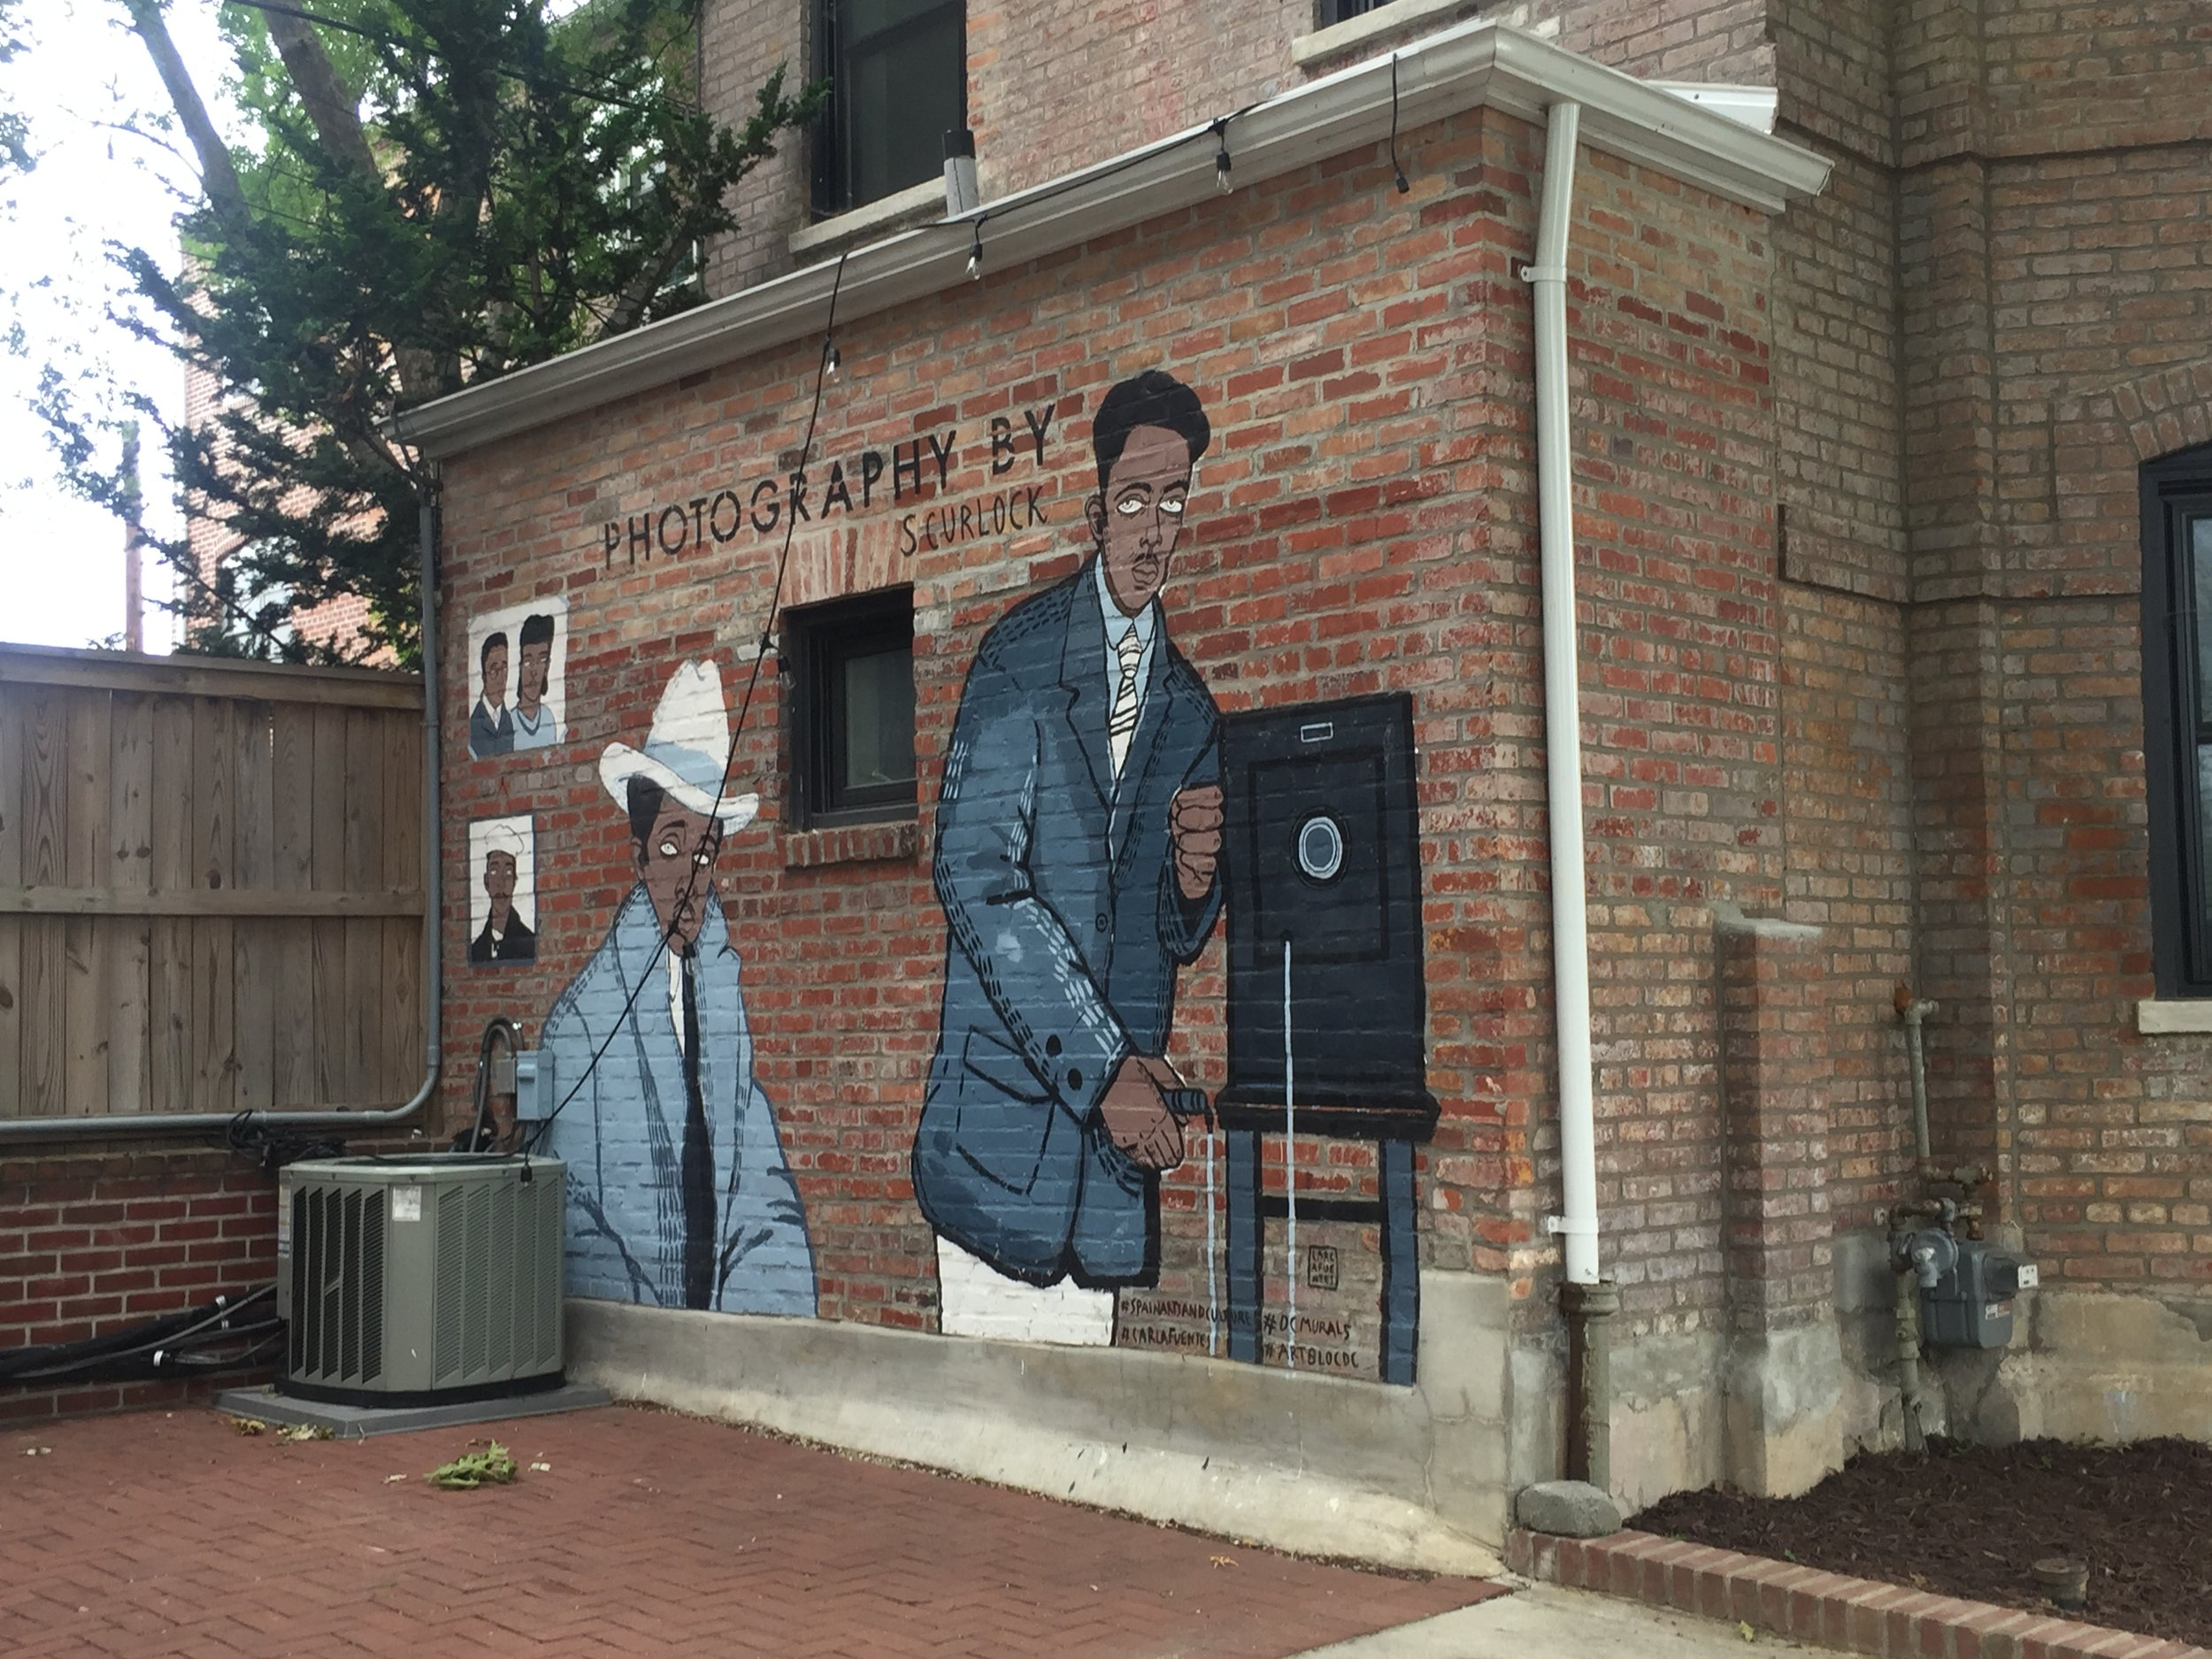 Scurlock Photography Mural | Washington D.C. 1800 ½ 11th St. NW